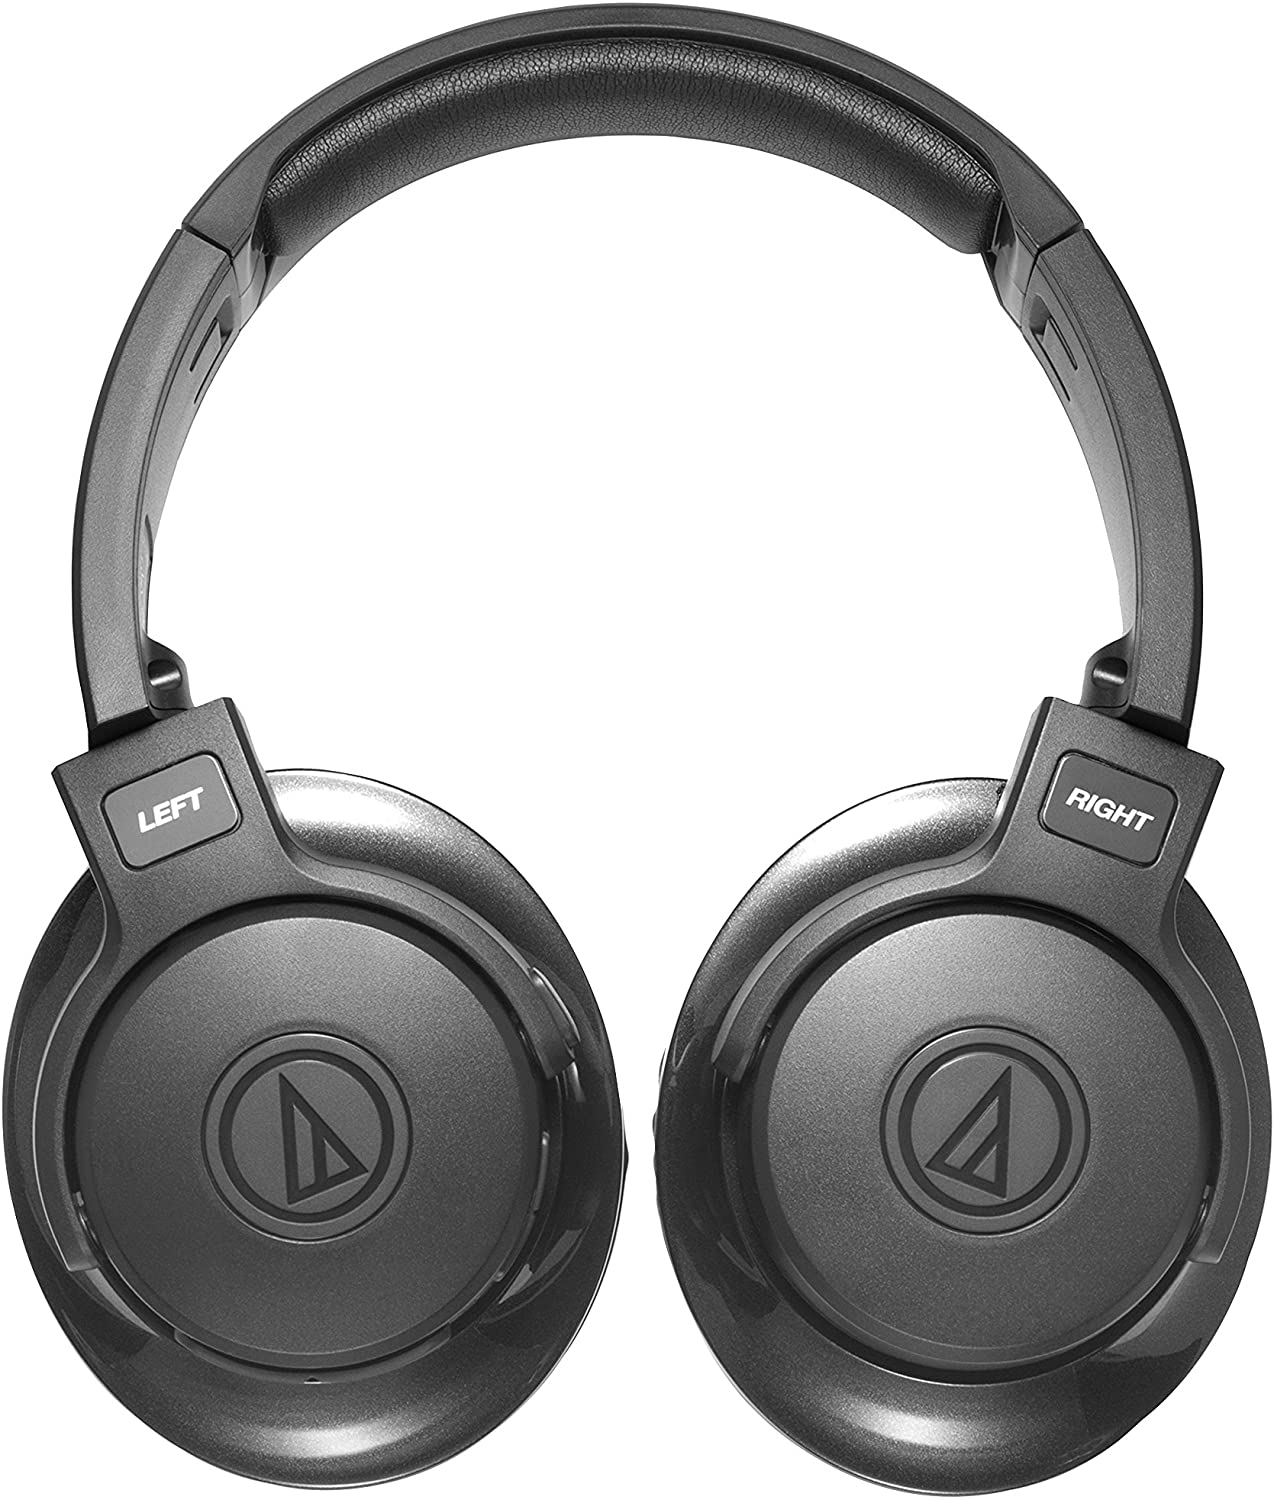 Ath-s700bt Review